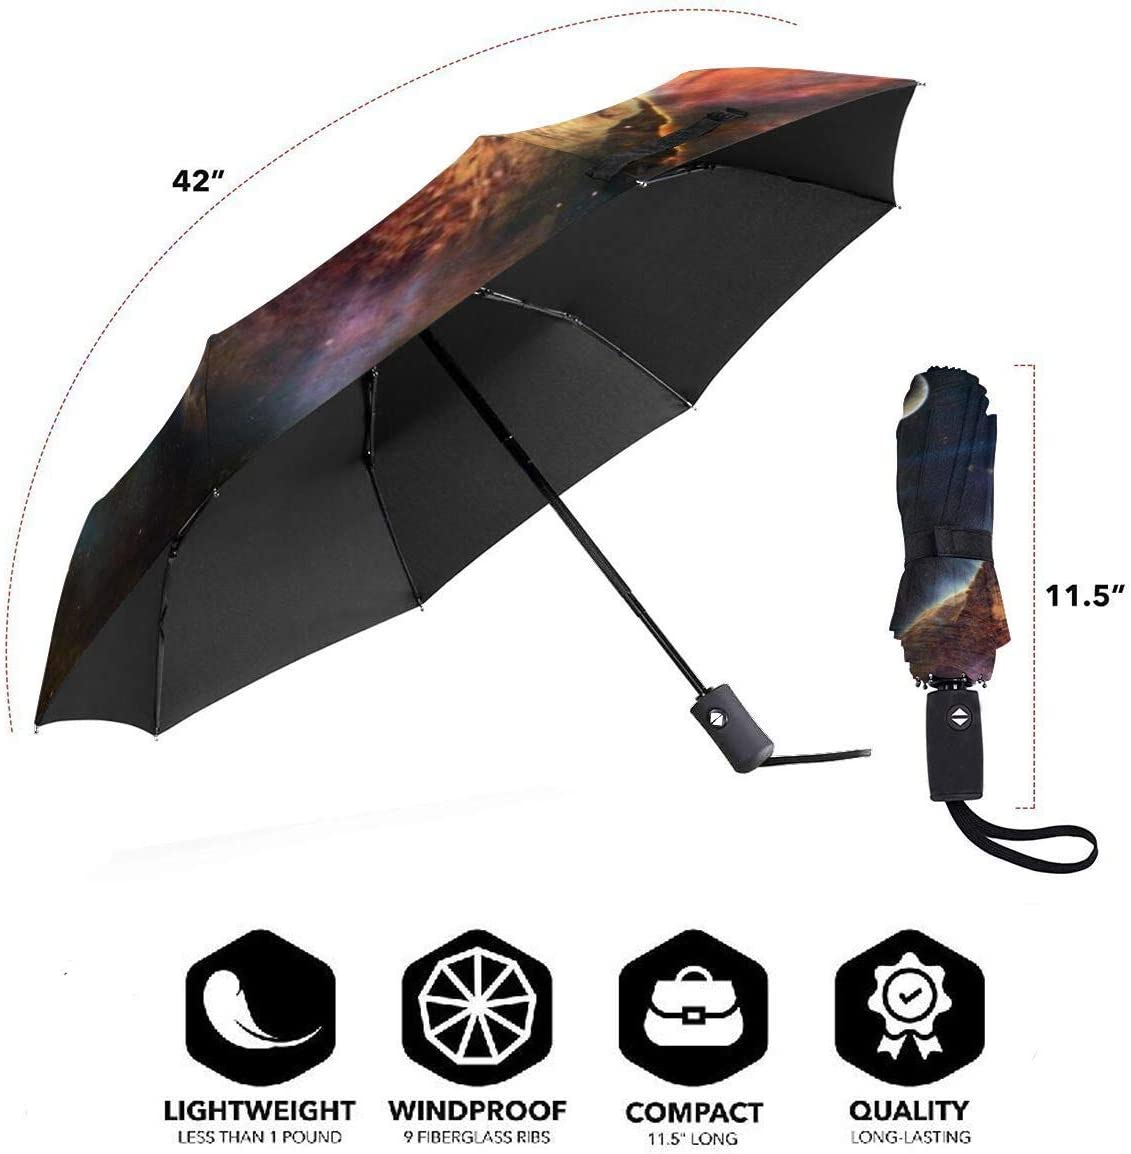 Cats From Outer Space Windproof Automatic Tri-Fold Foldable Umbrella Cartoon UV Protection Travel Unbreakable Compact Portable Sun Rain Umbrella